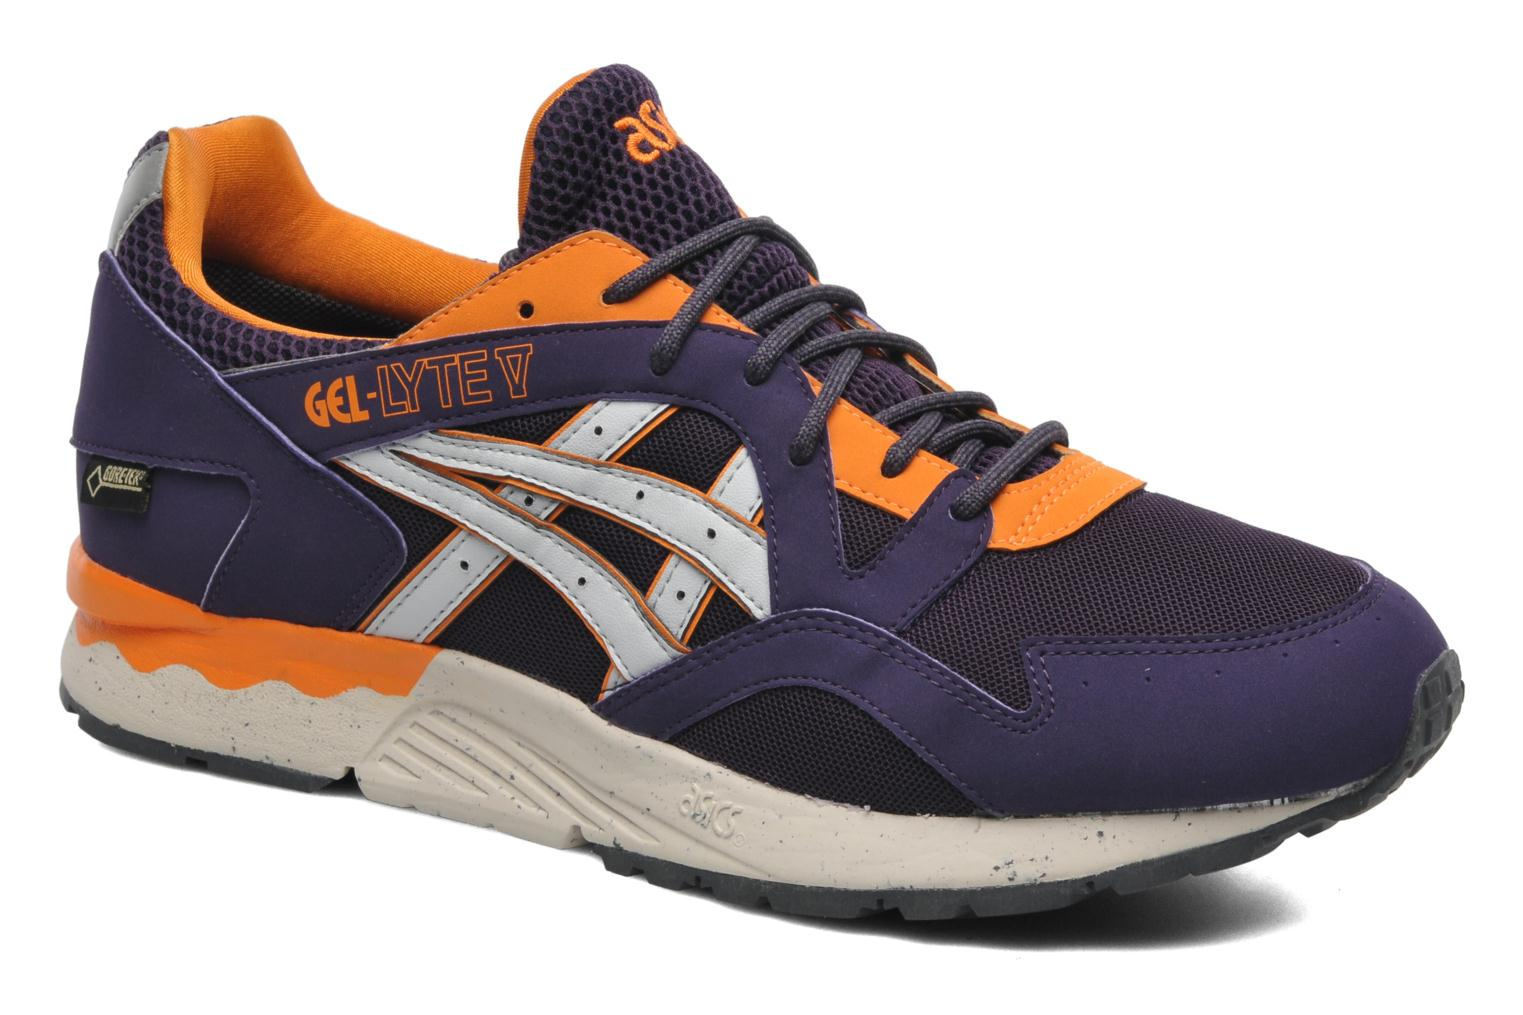 asics gel lyte v violet baskets chez sarenza 191123. Black Bedroom Furniture Sets. Home Design Ideas